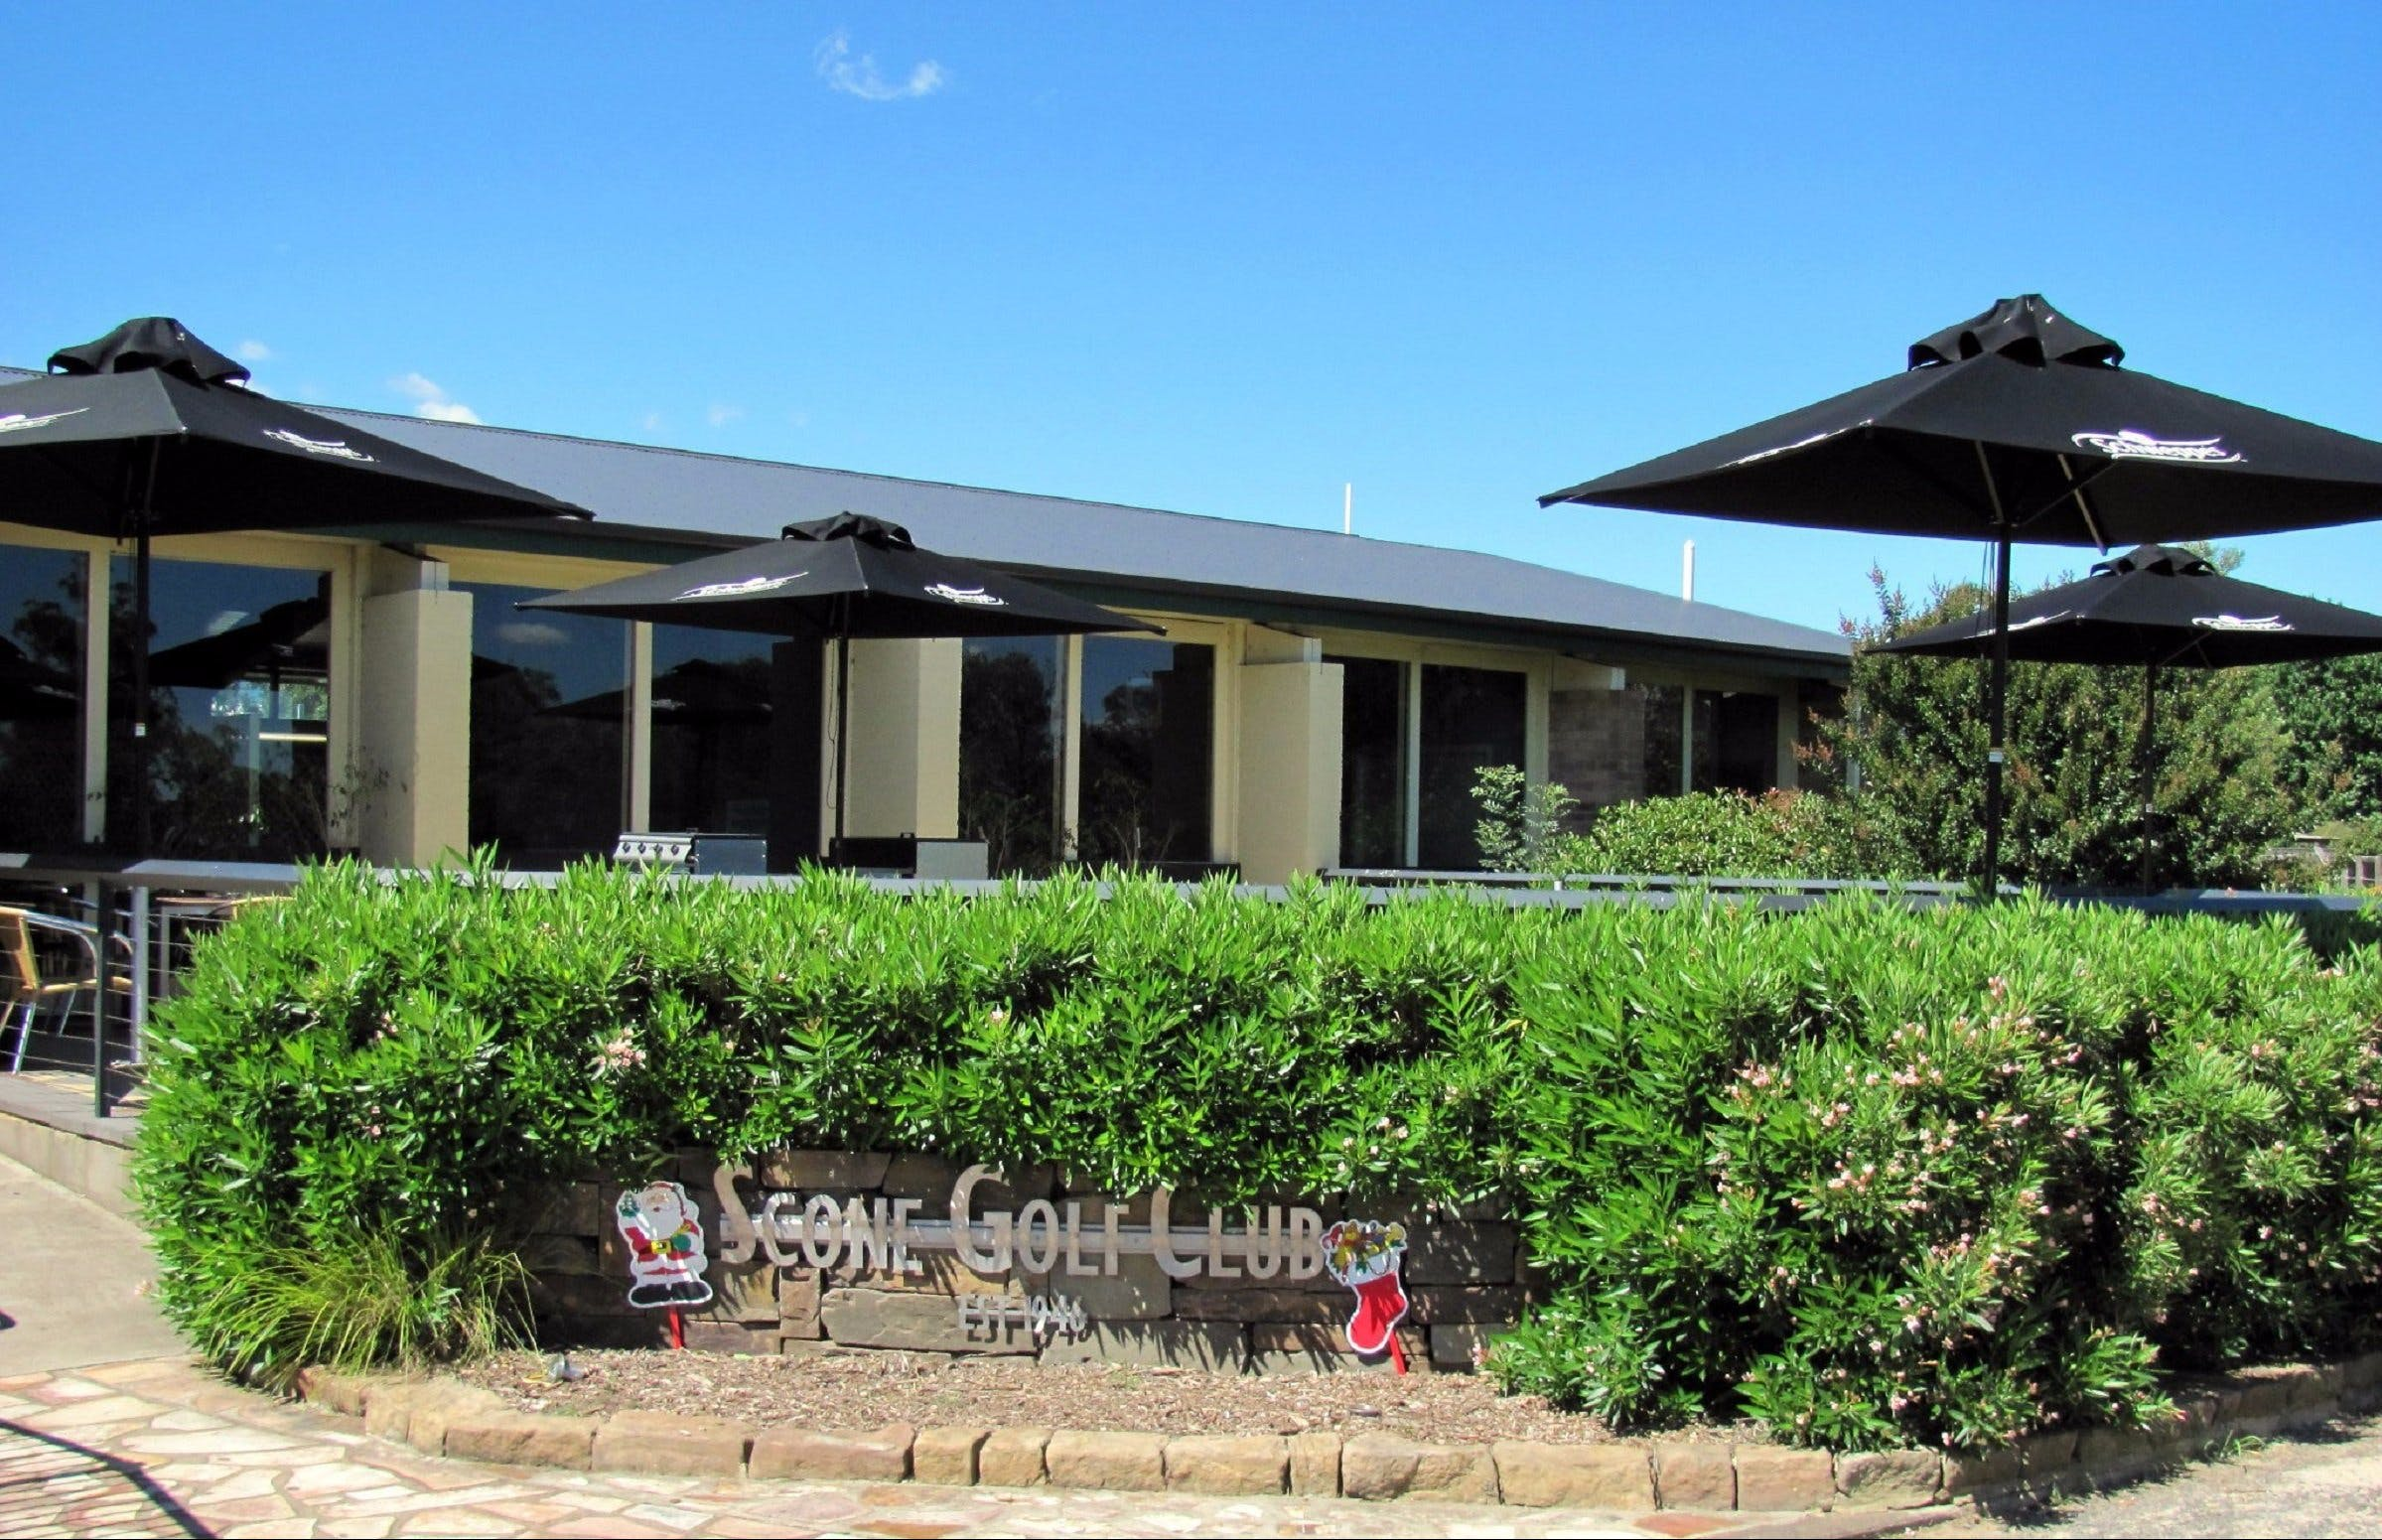 Scone Golf Club - Accommodation Rockhampton